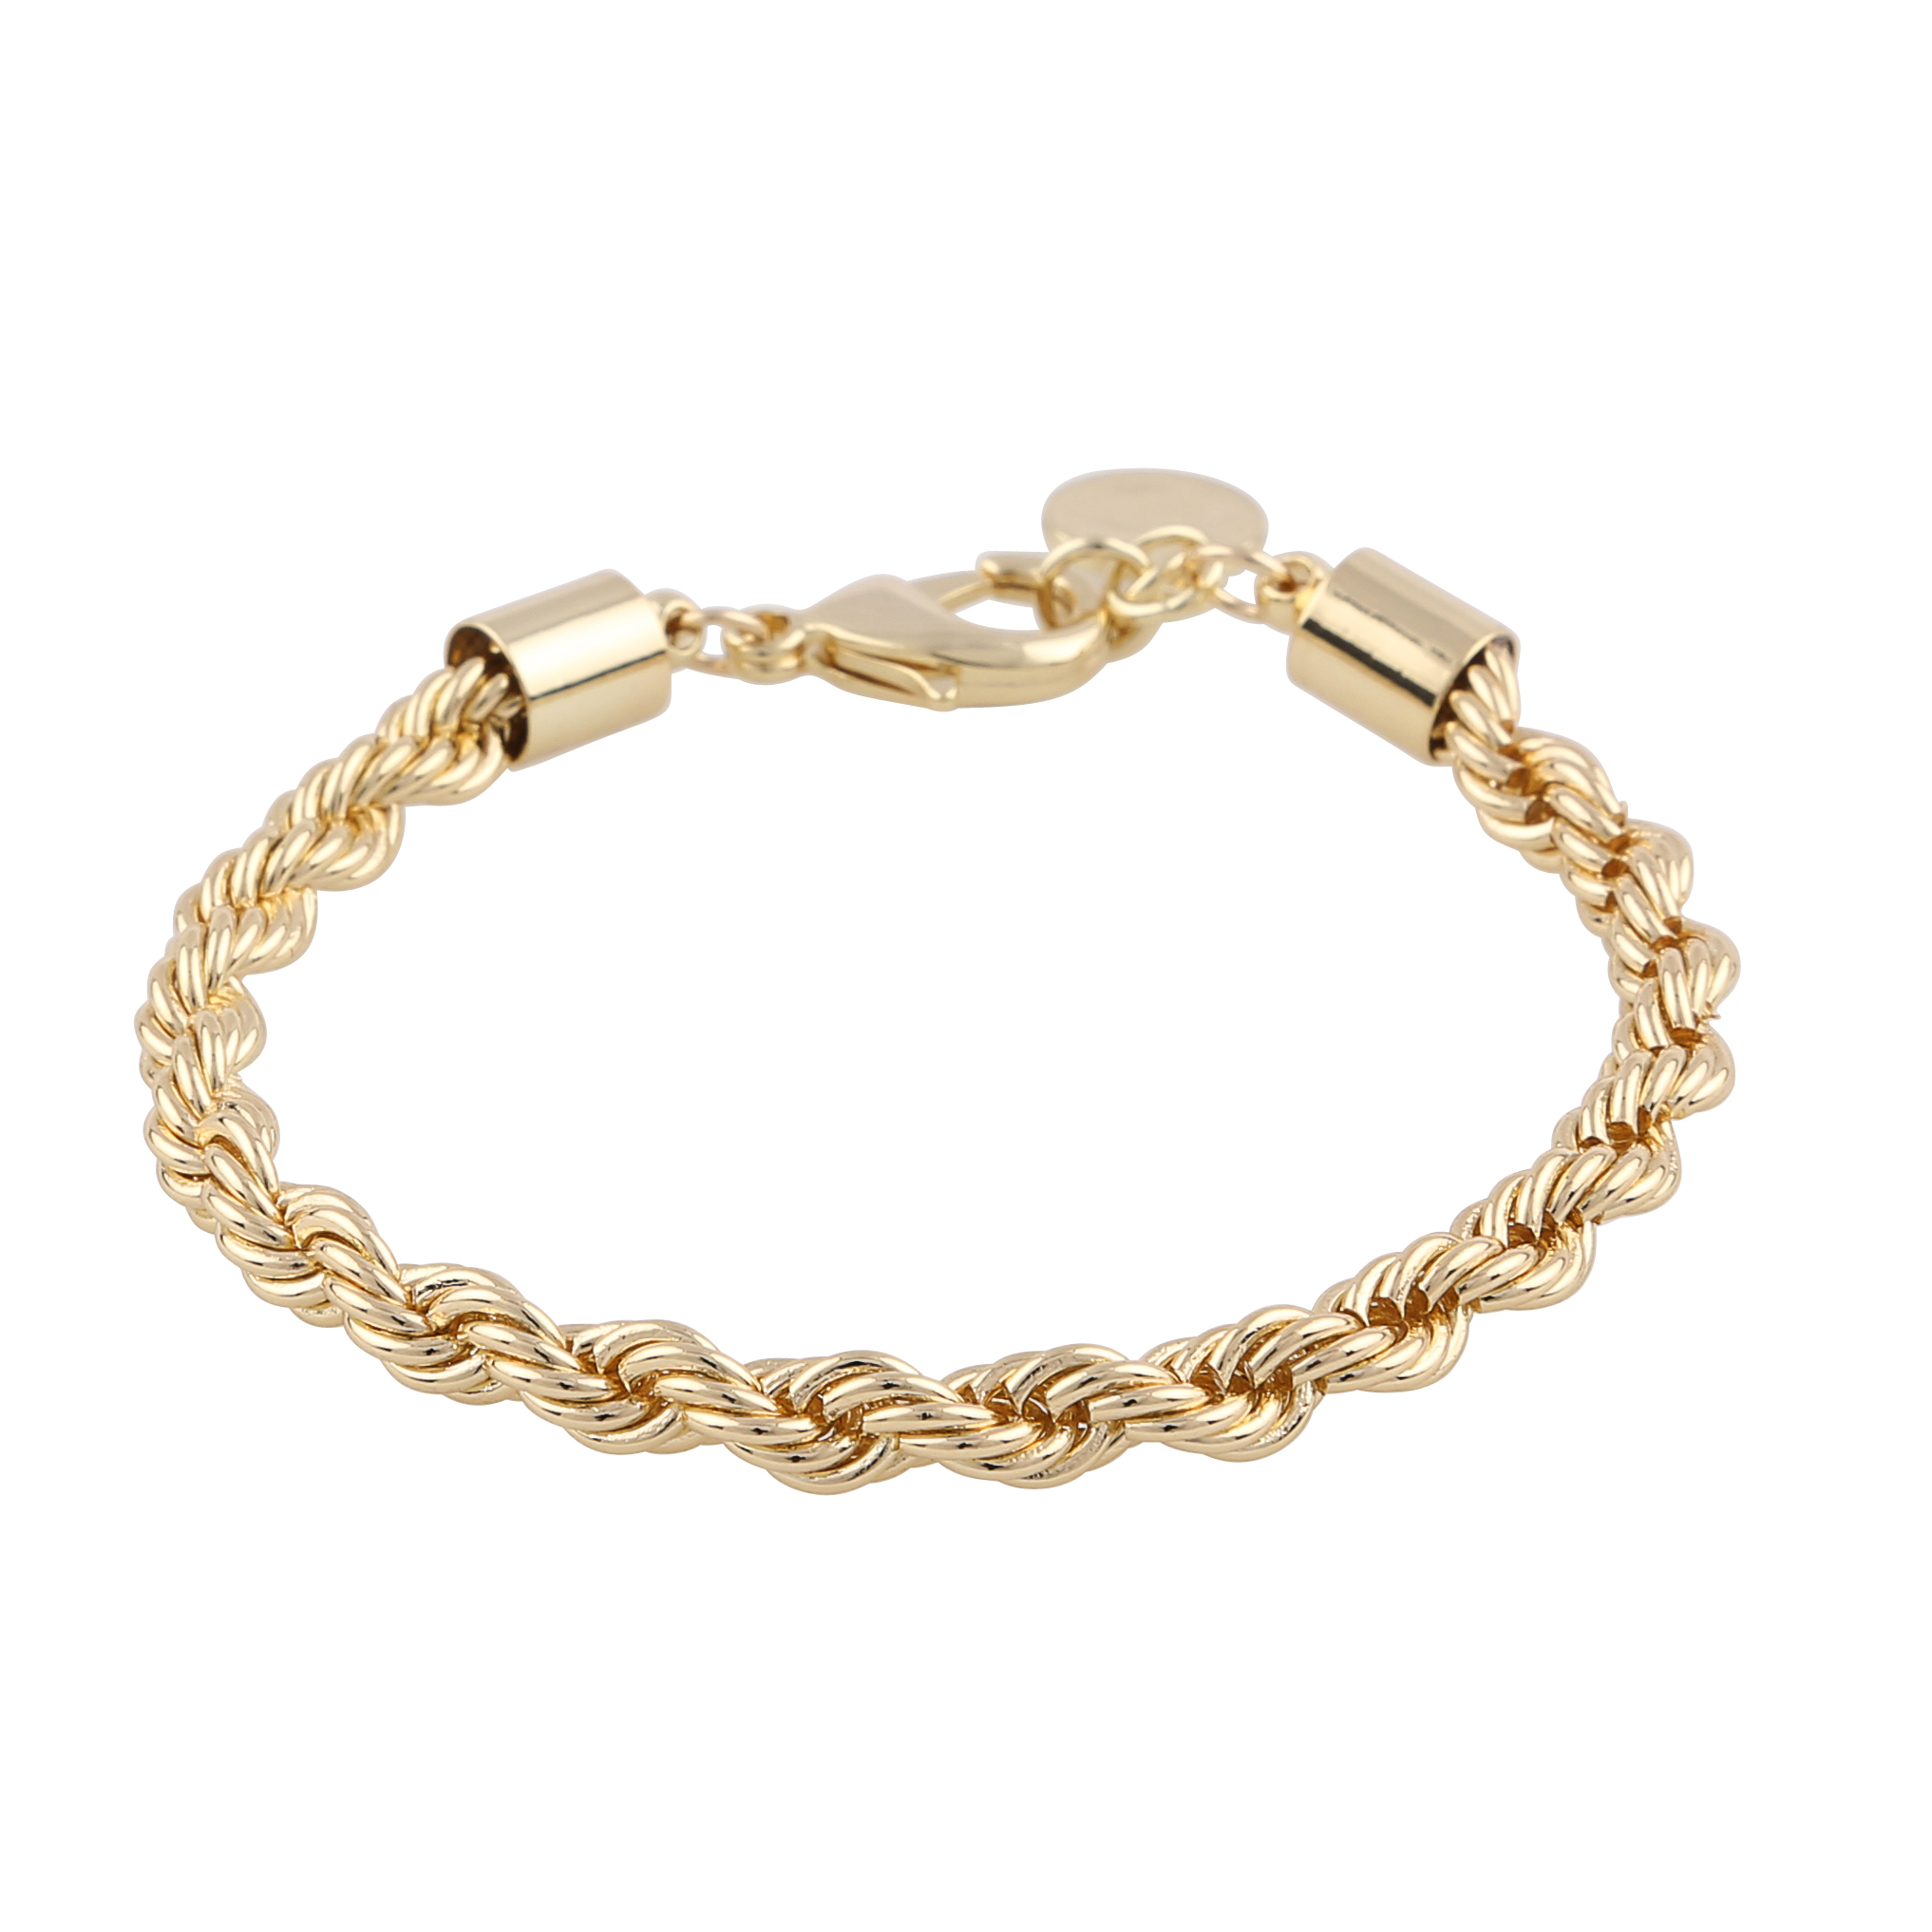 Turn Single Bracelet Gold